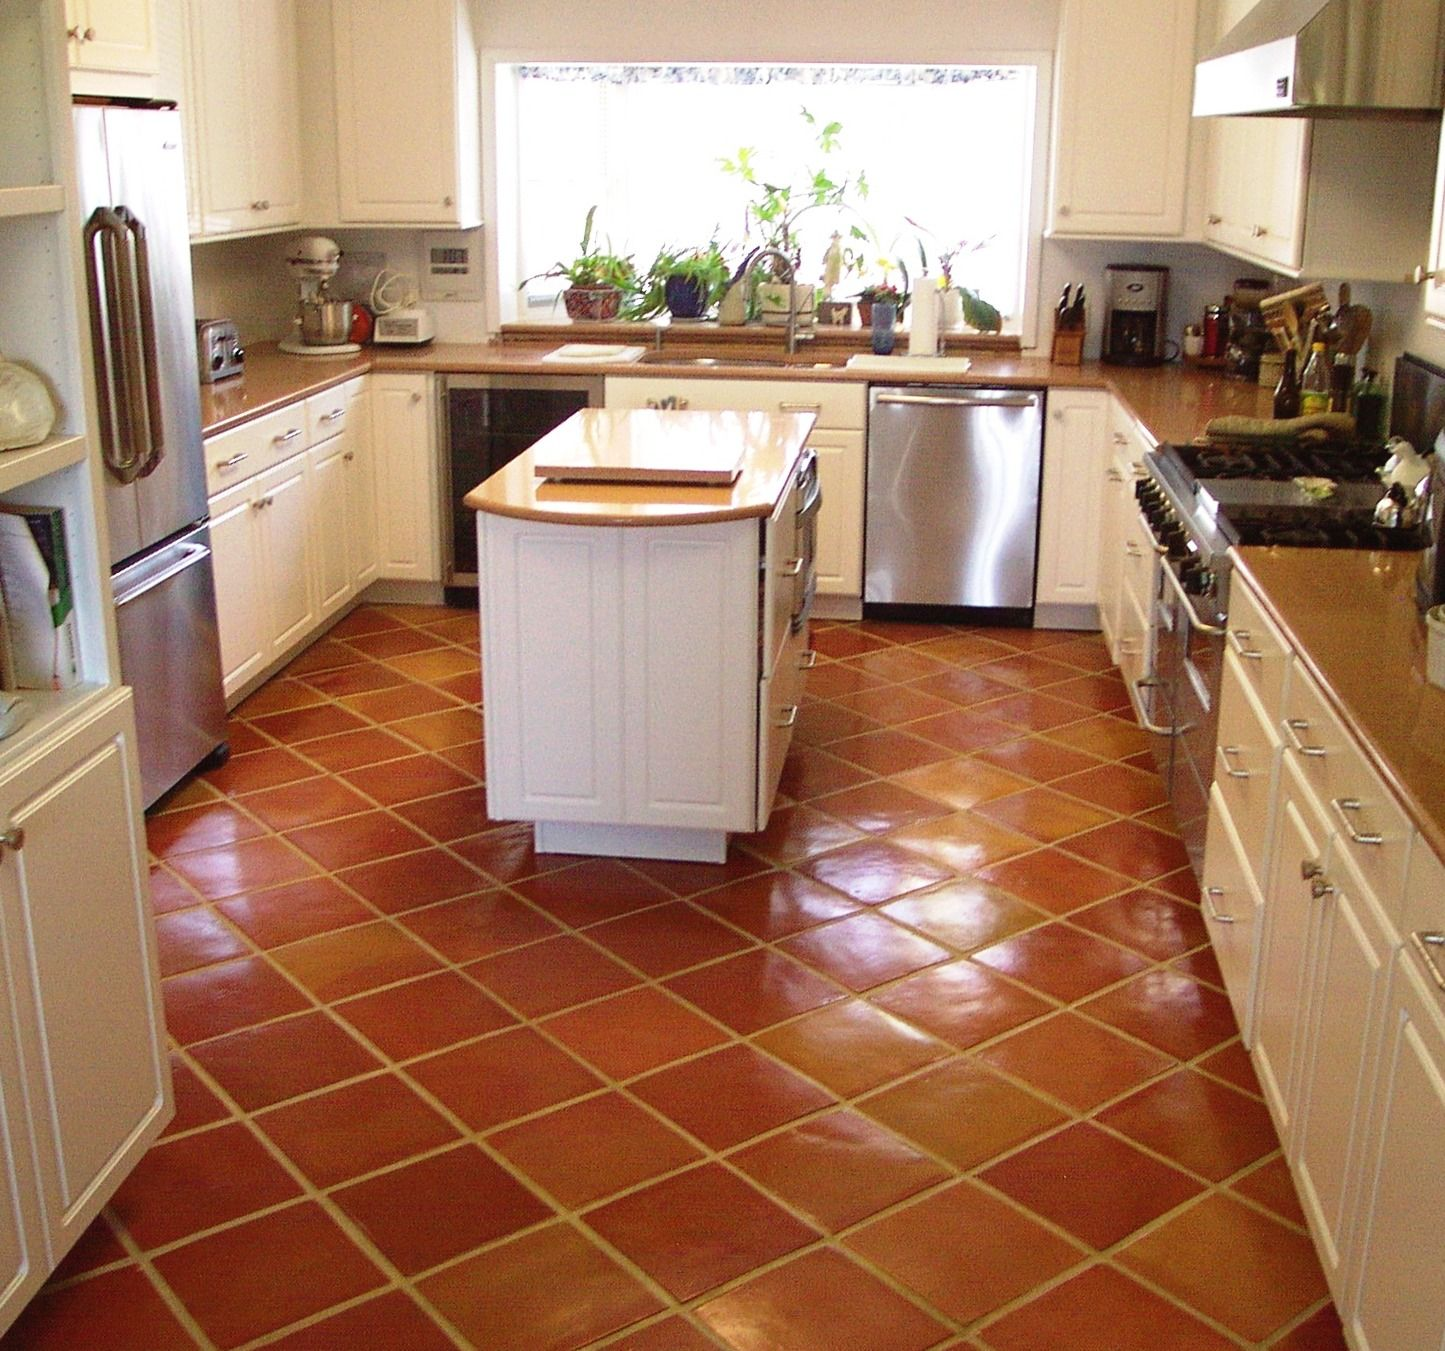 Terracotta Floor Tiles Kitchen Traditional Saltillo Terra Cotta Floor Tile In A Beautiful White